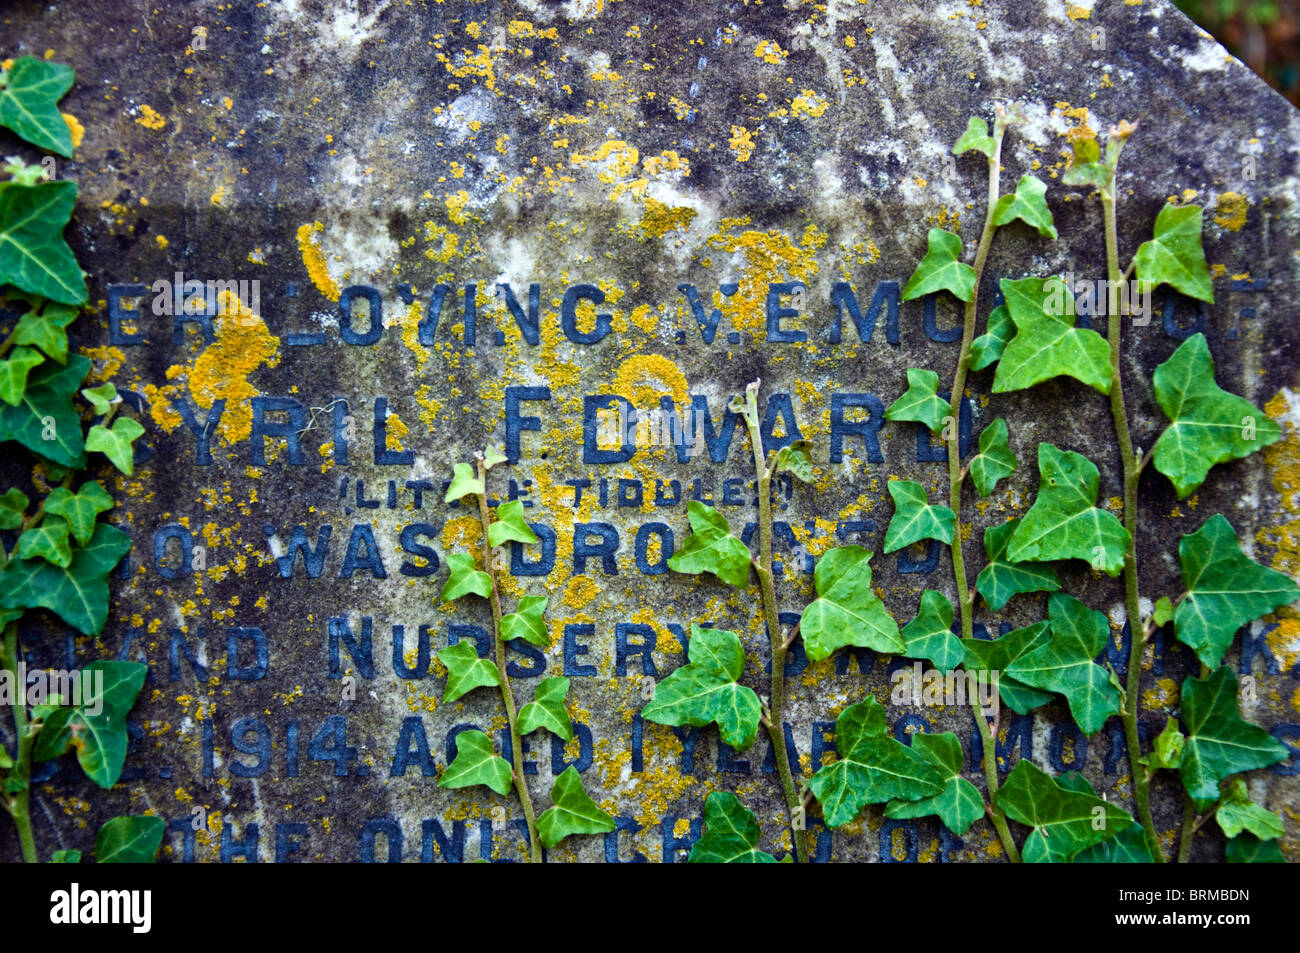 Ivy growing on an old gravestone - Stock Image